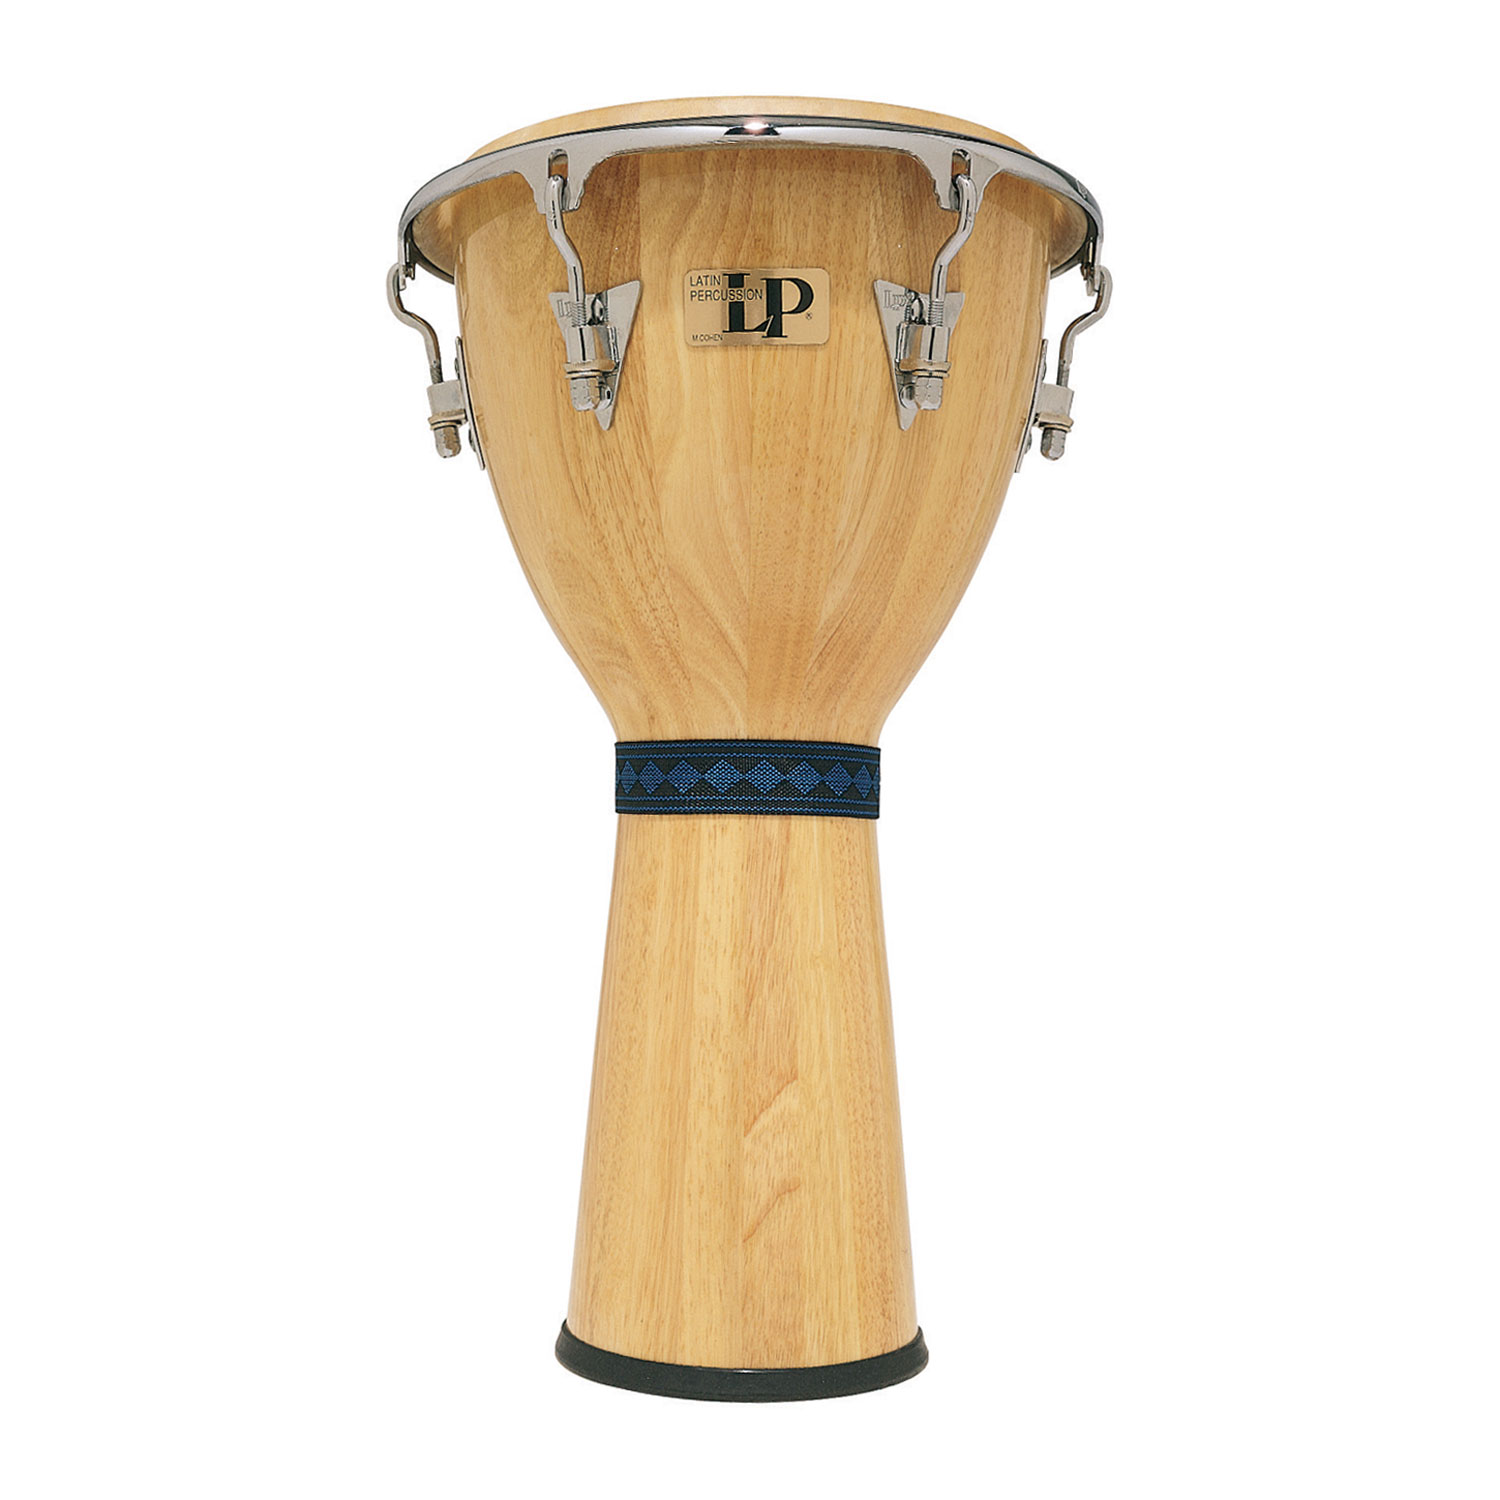 "LP 12 1/2"" Natural Djembe with Comfort Curve Rims"